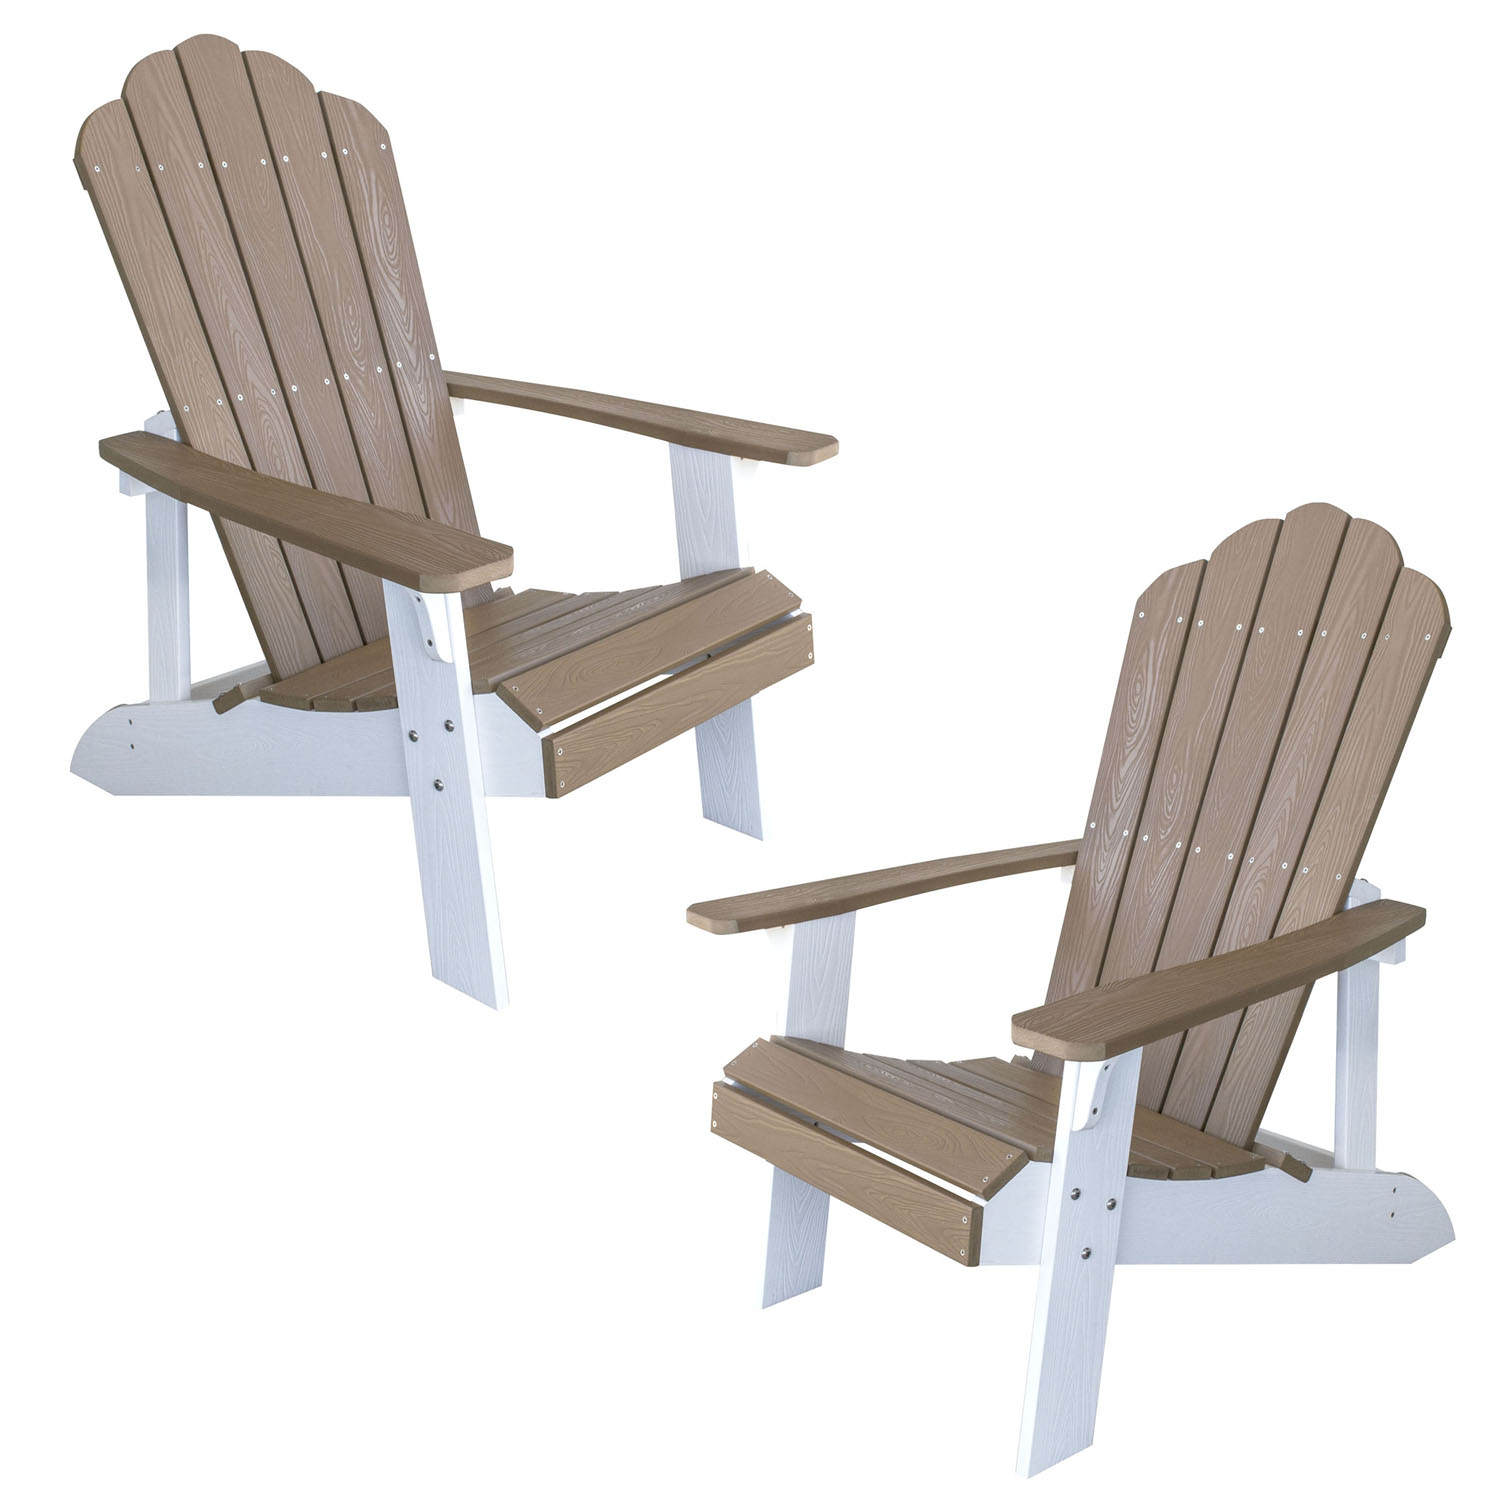 Simulated Wood Outdoor Two Tone Adirondack Chair, Tan with White Accents, 2 Piece Set